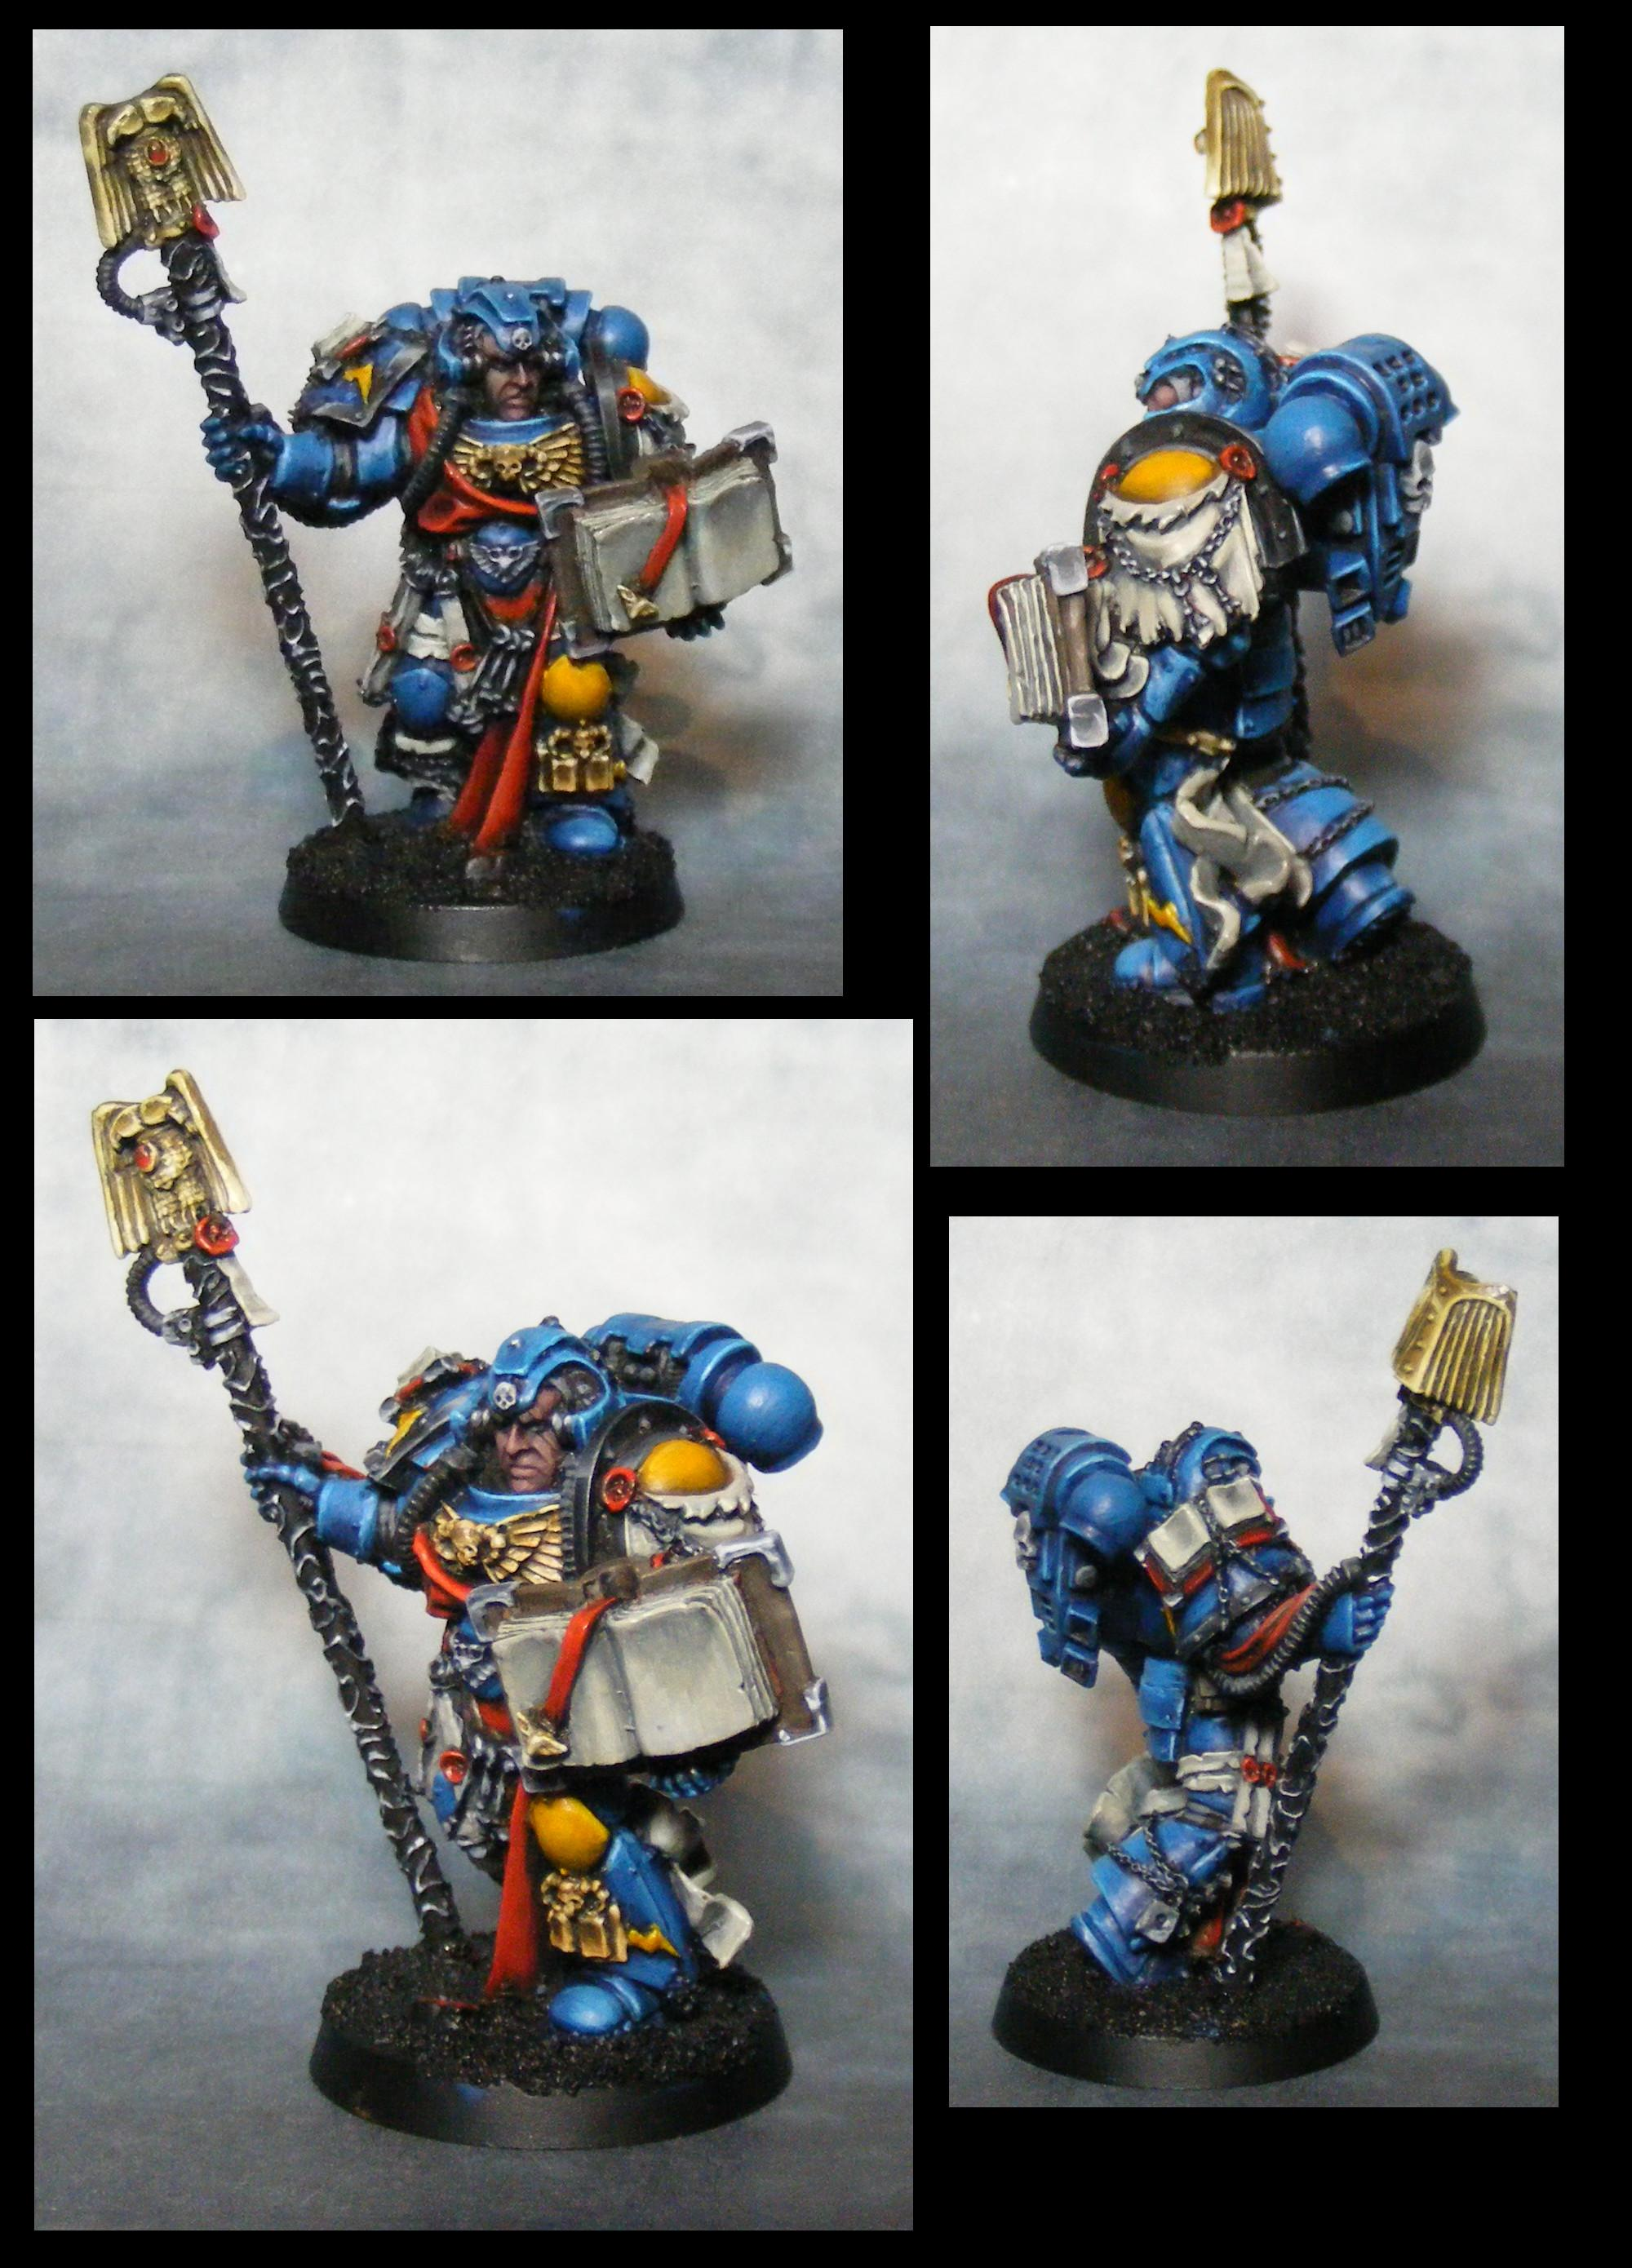 Imperial Fists, Librarian, Space Marines, Warhammer 40,000